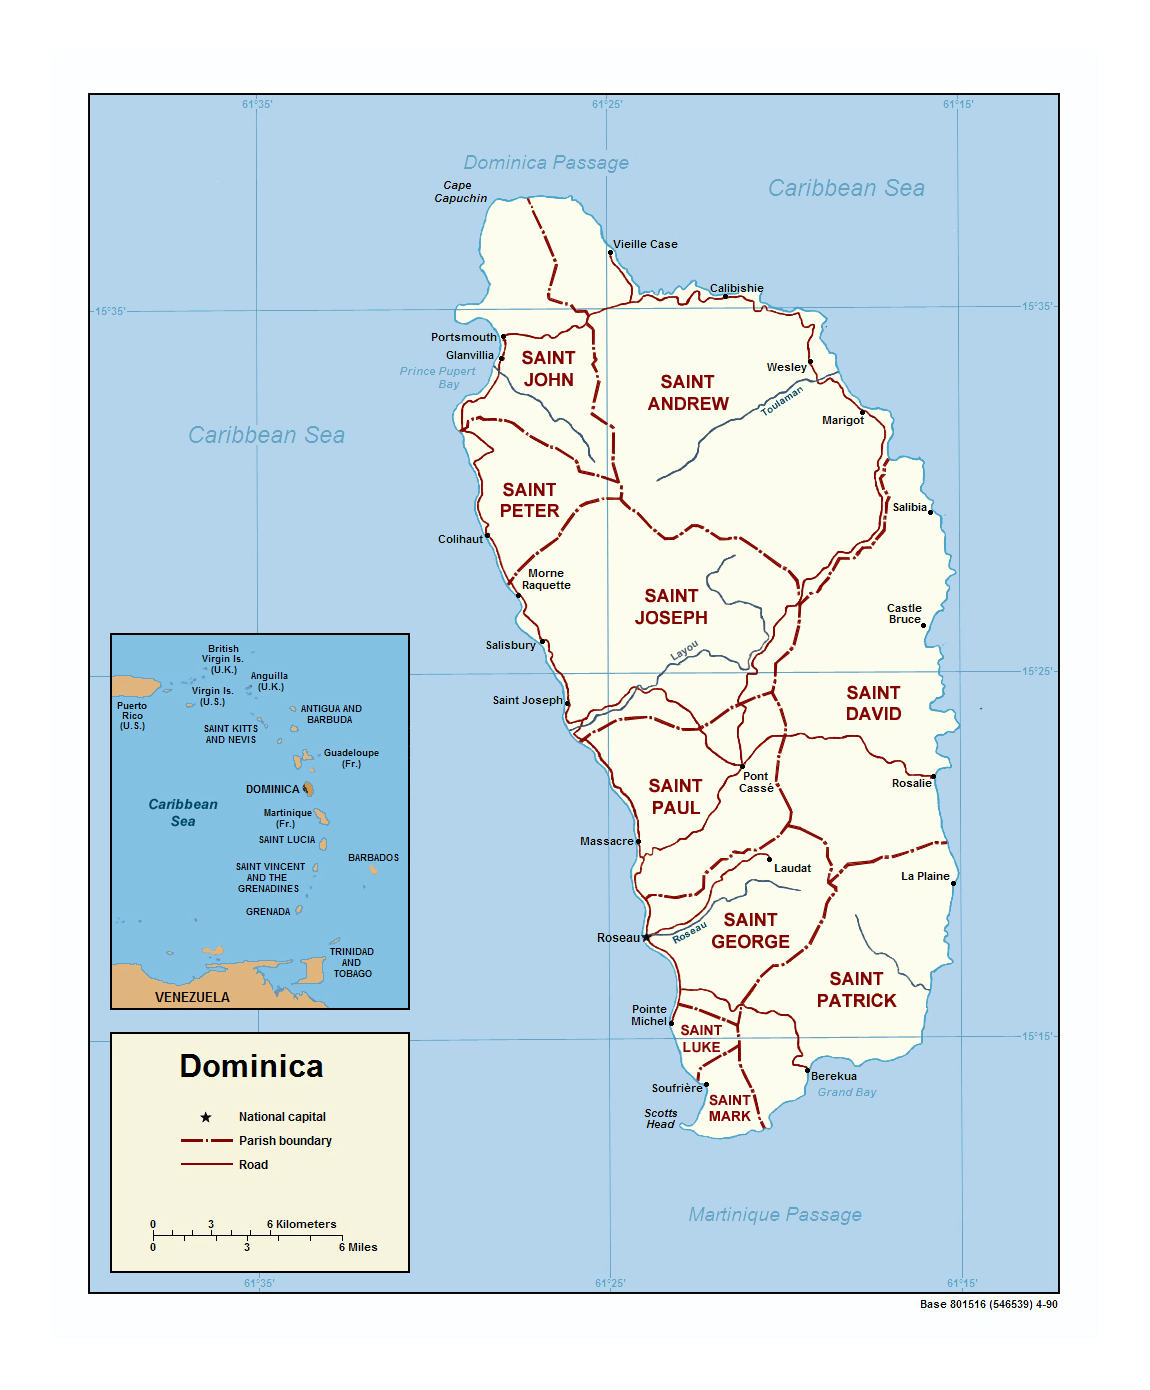 Detailed Political And Administrative Map Of Dominica With Roads - Dominica political map